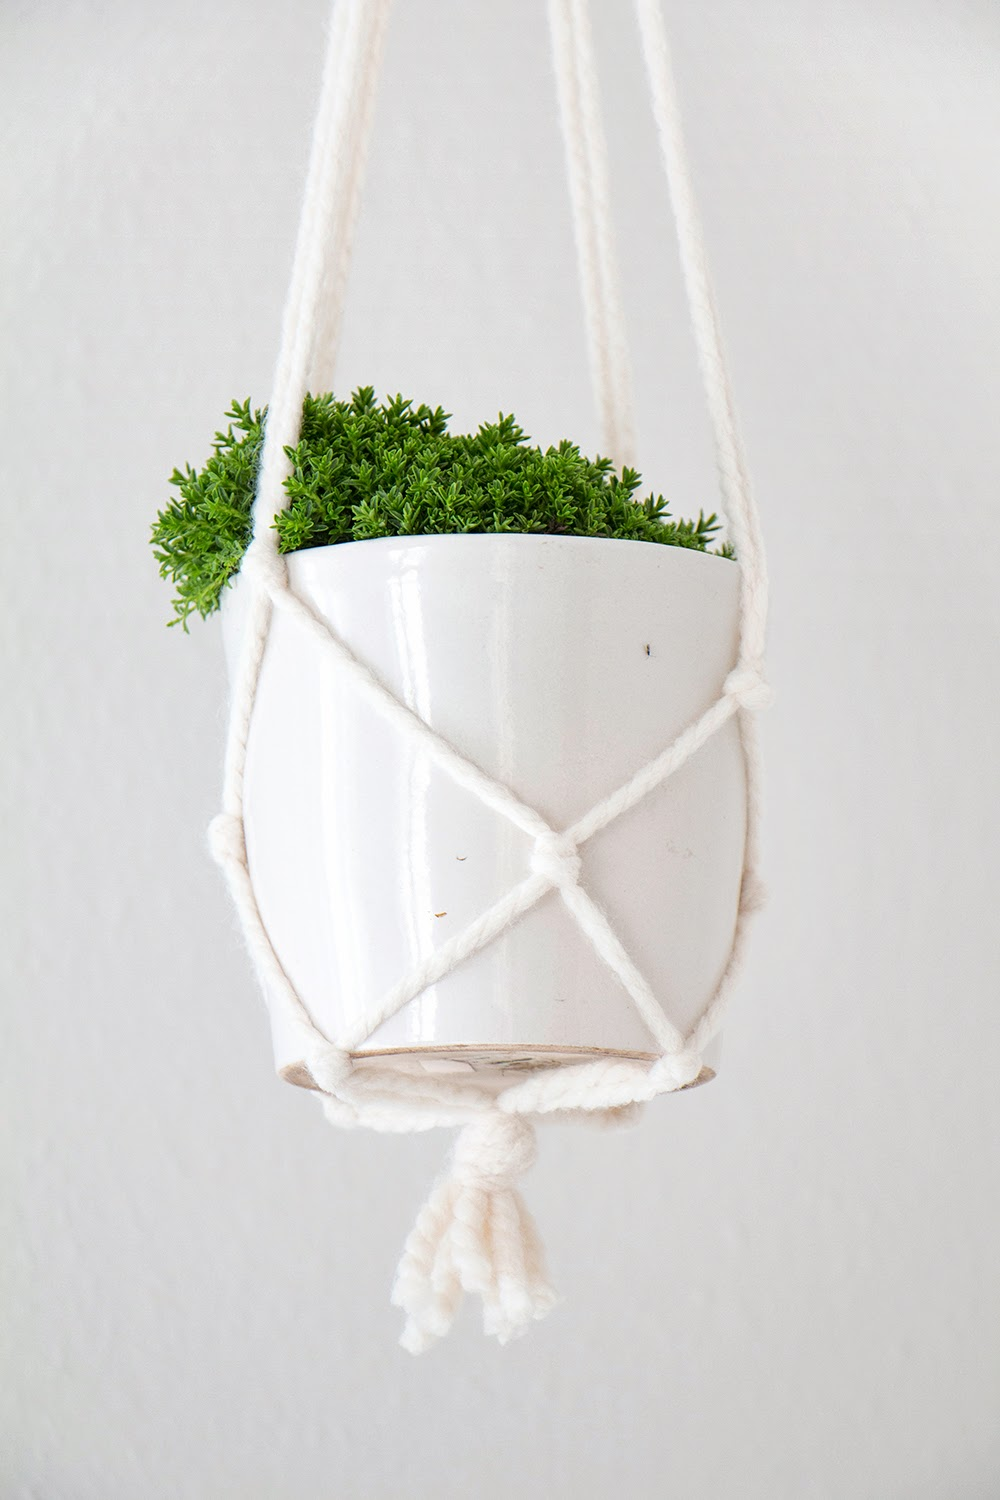 Simple Diy Macrame Necklace: Chi Chi Dee Handmade: DIY Macrame Pot Hanger Tutorial